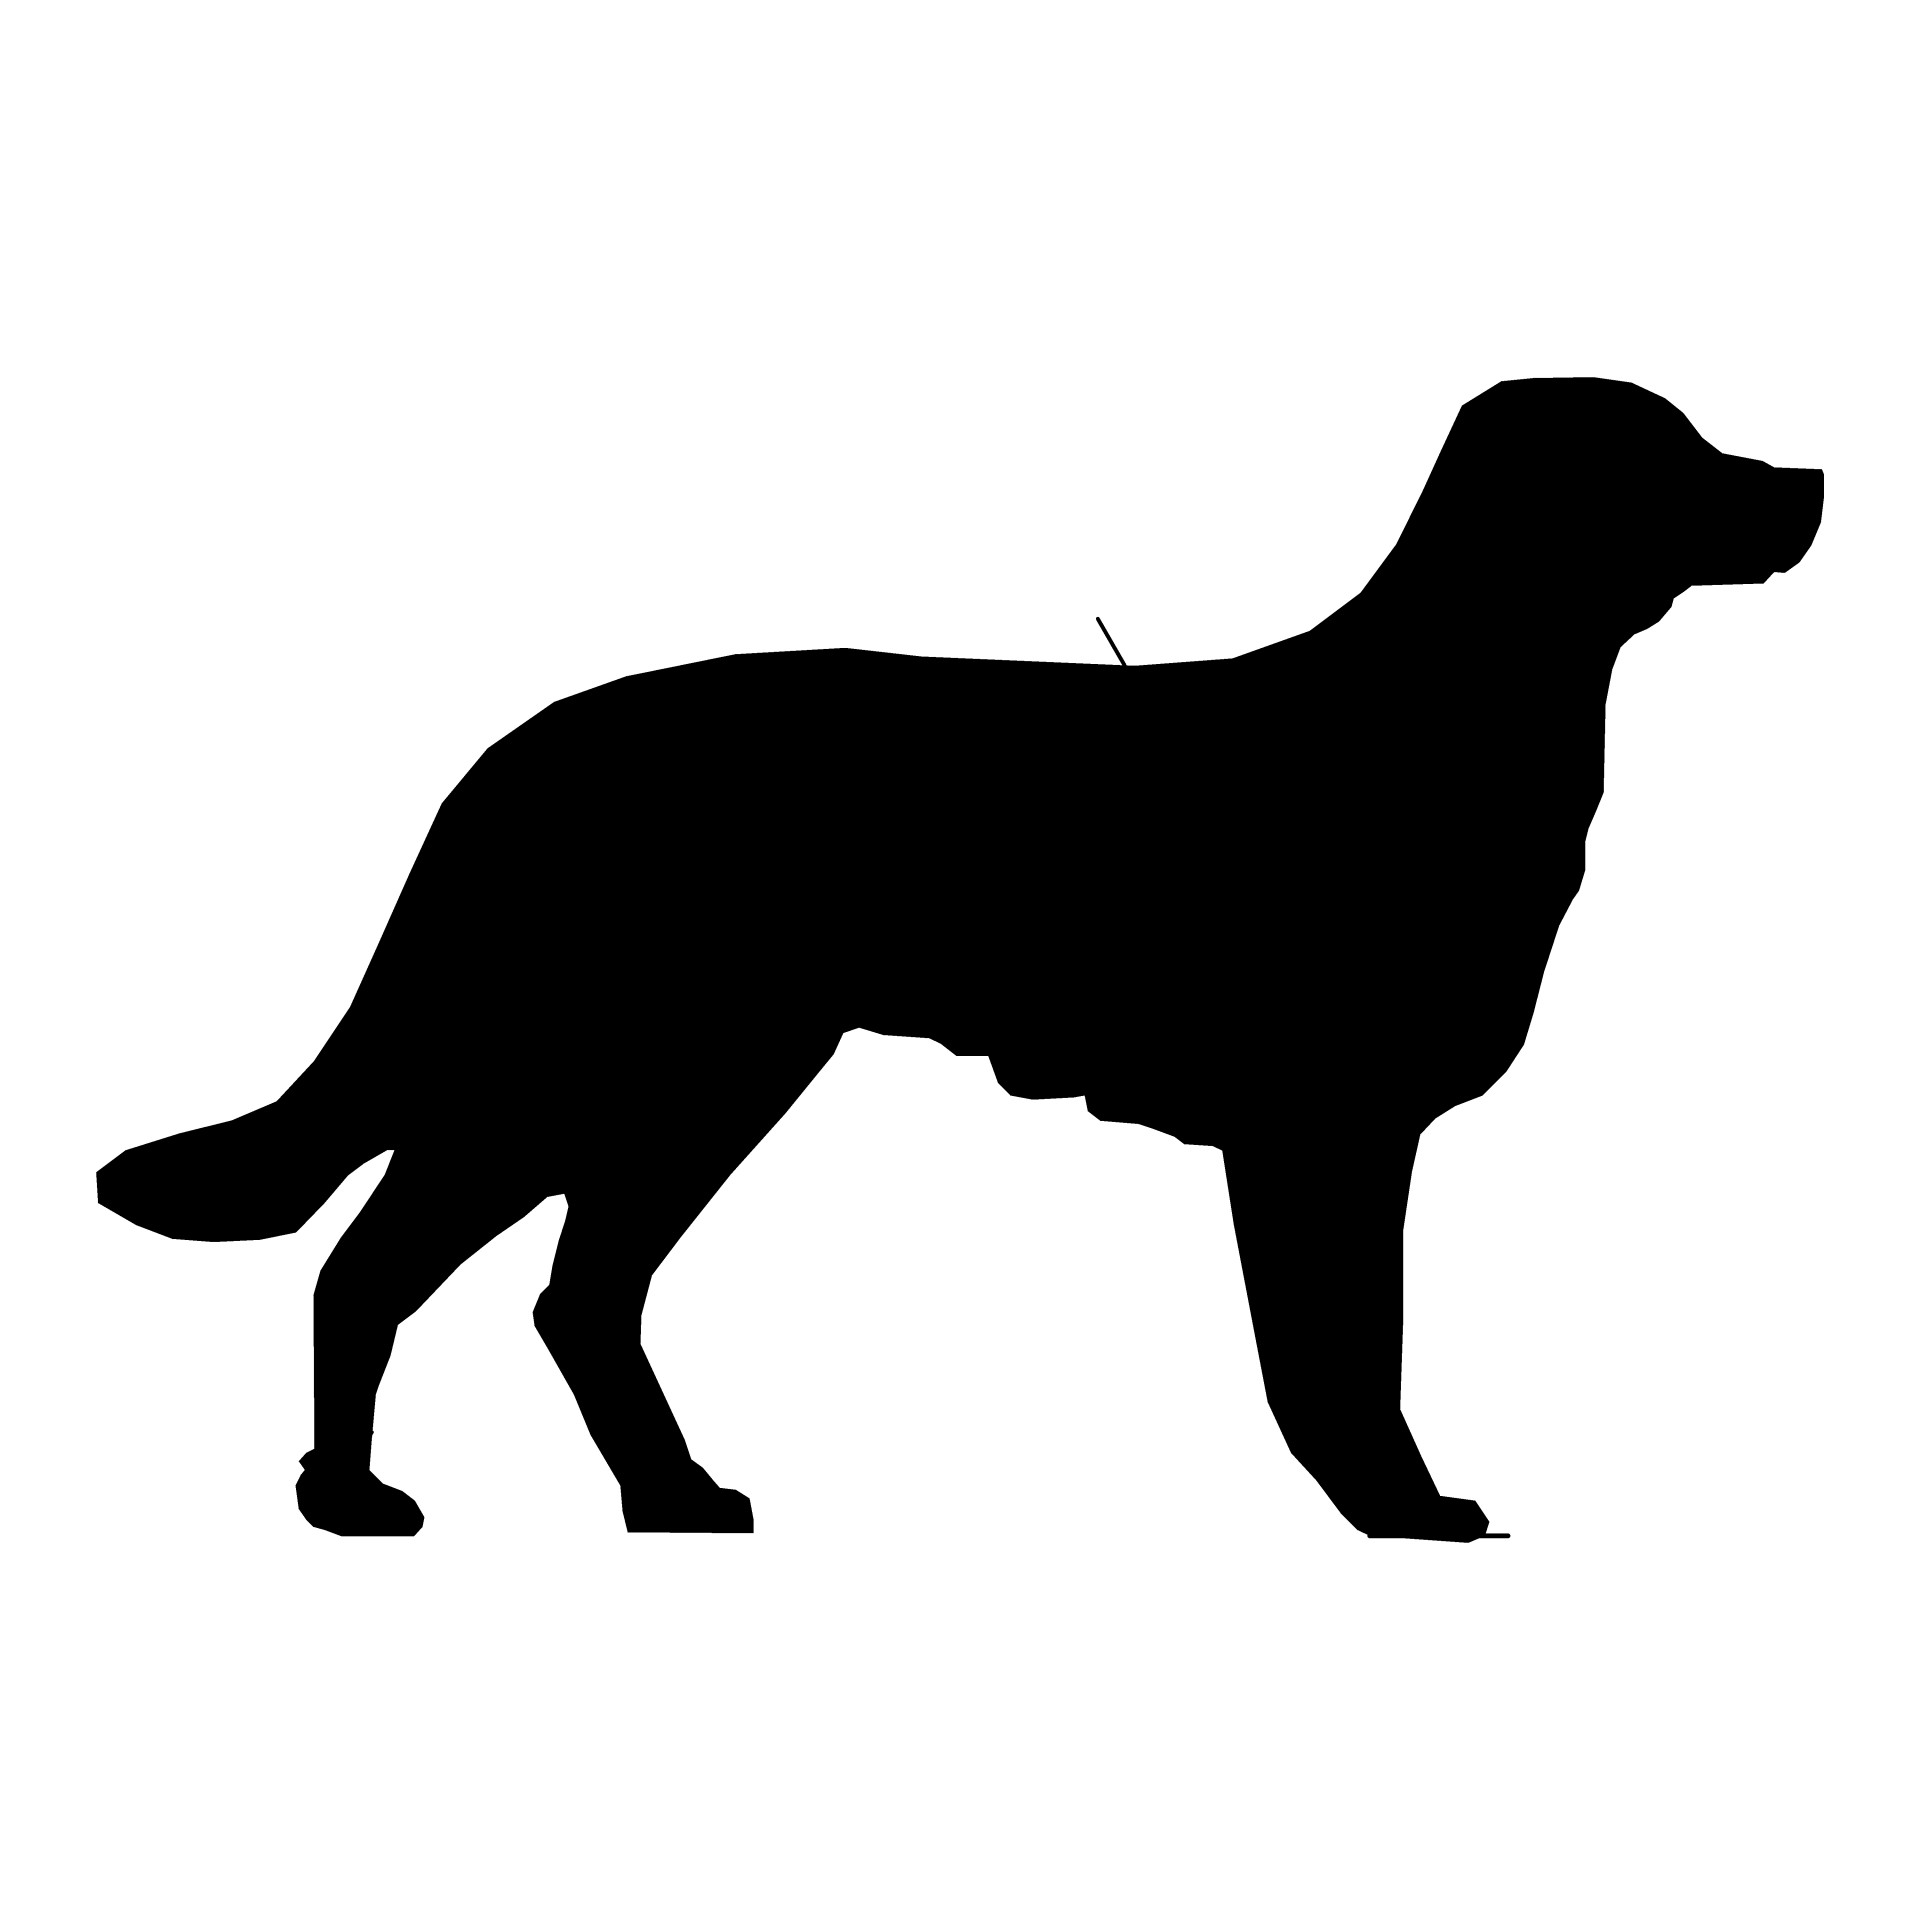 1920x1920 Dog Silhouette Drawing 08 Free Stock Photo